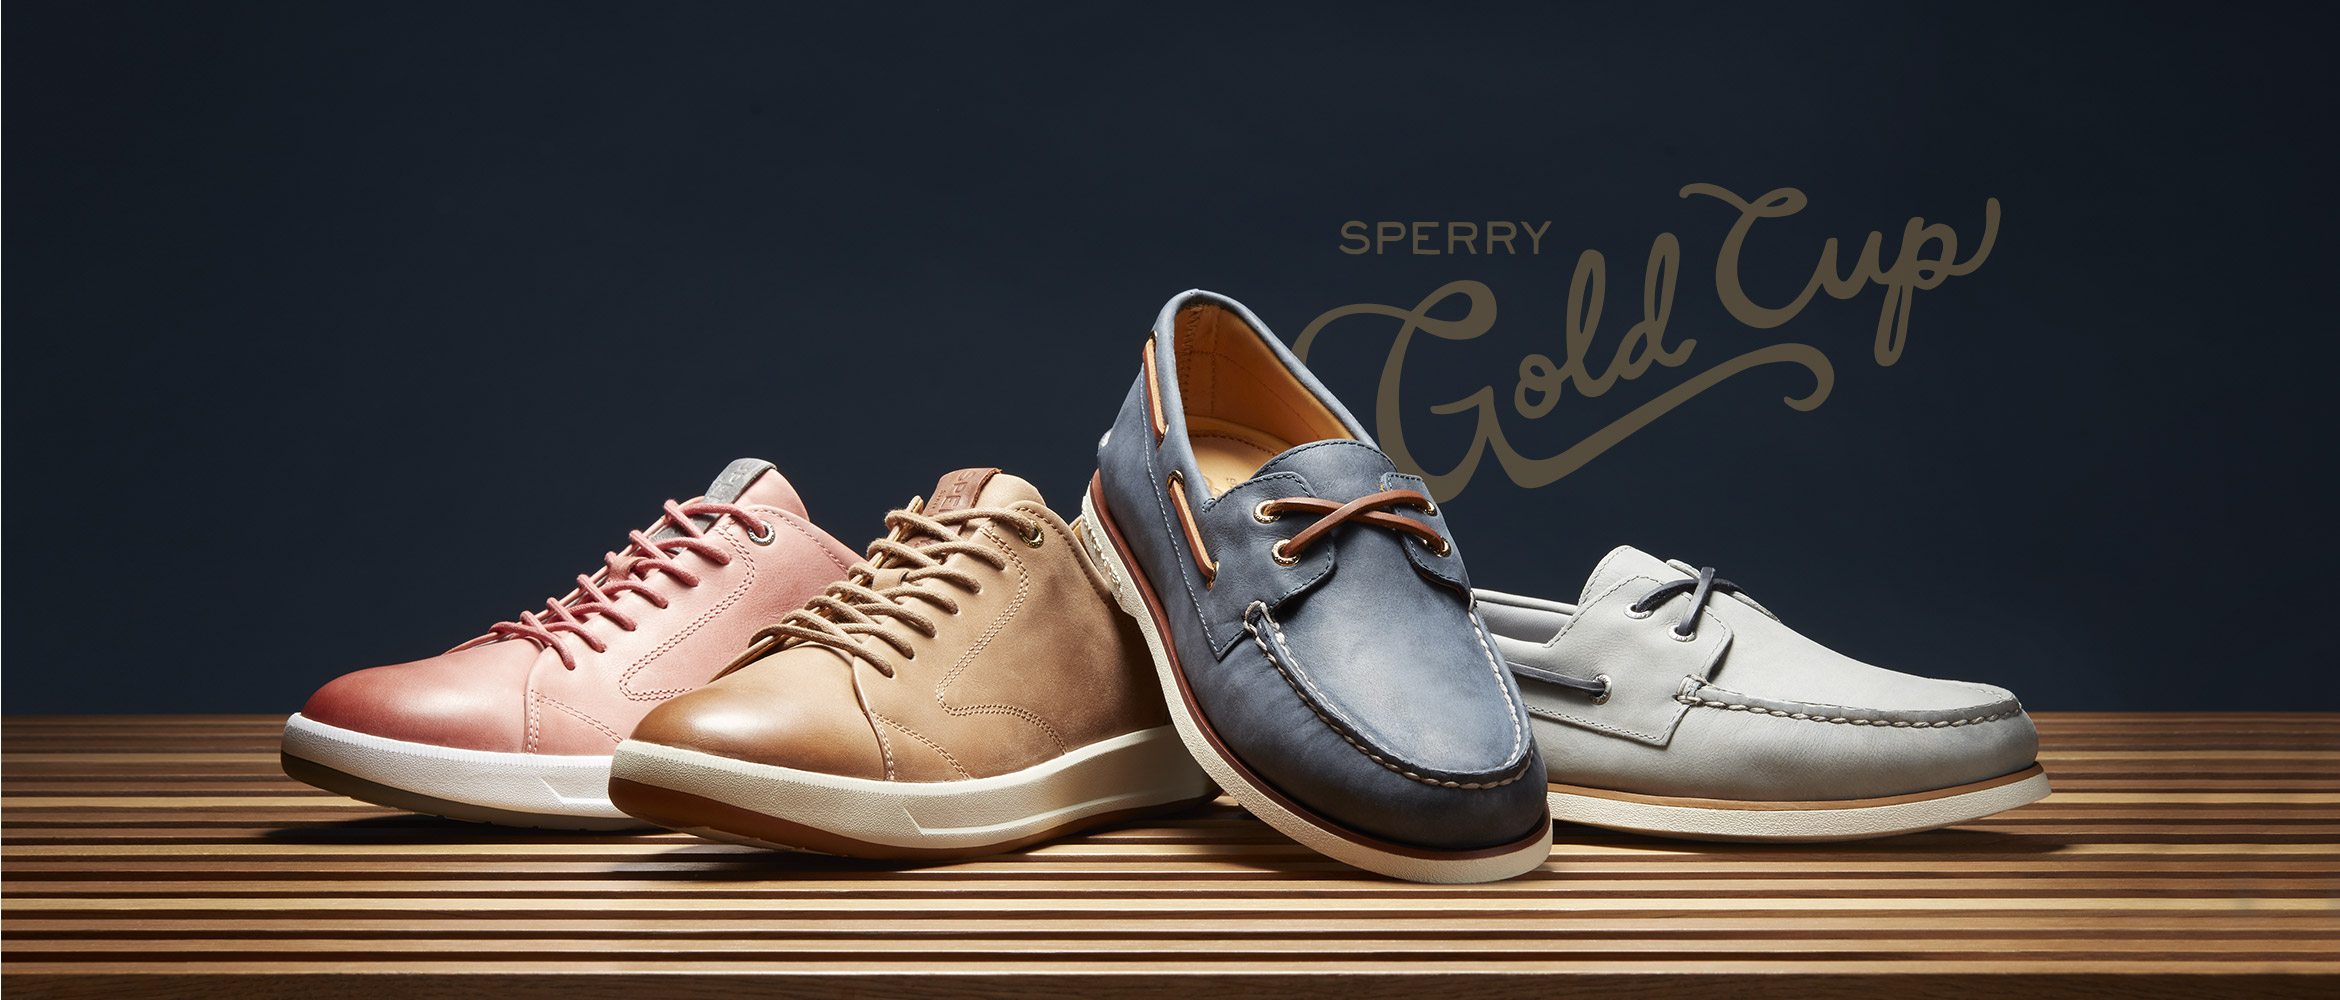 f89919a5866d SPERRY Gold Cup shoes on display with a blue background.